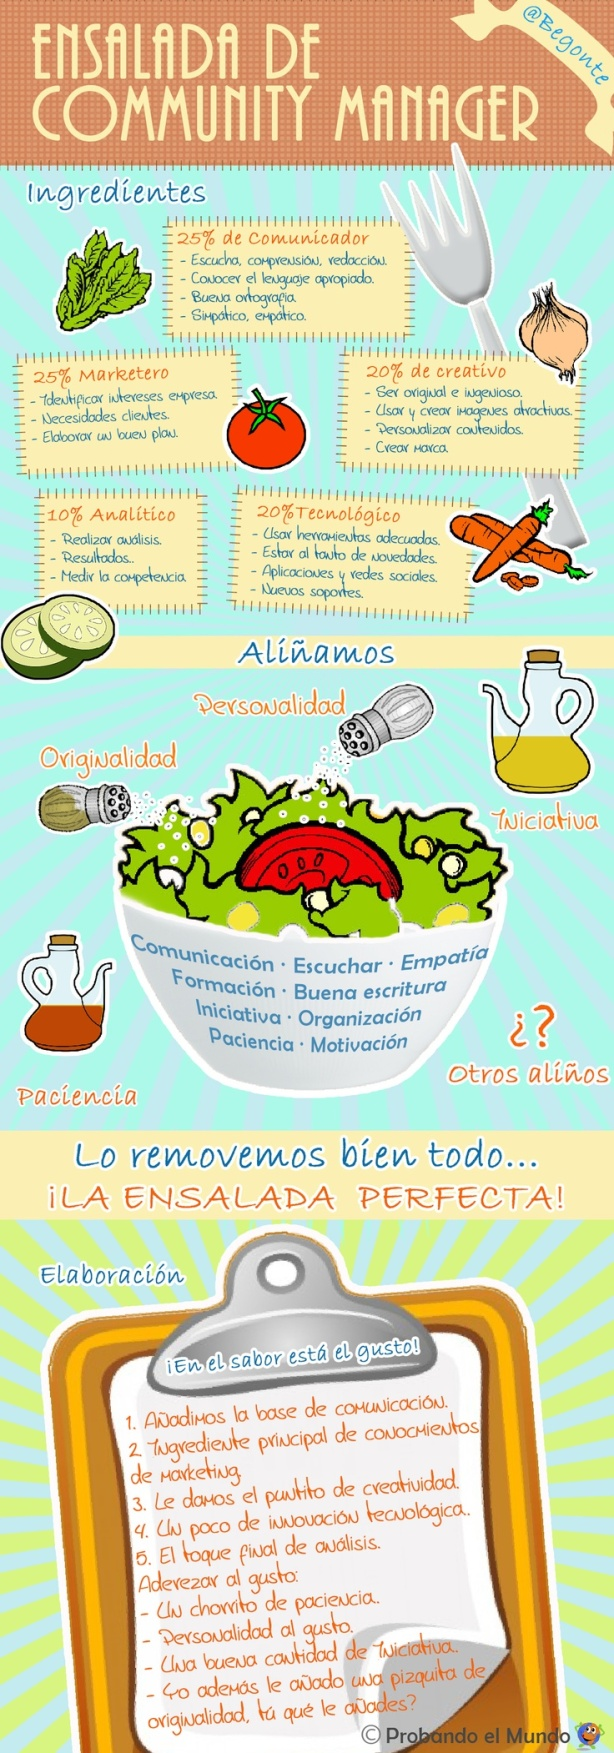 Ingredientes para un buen Community Manager